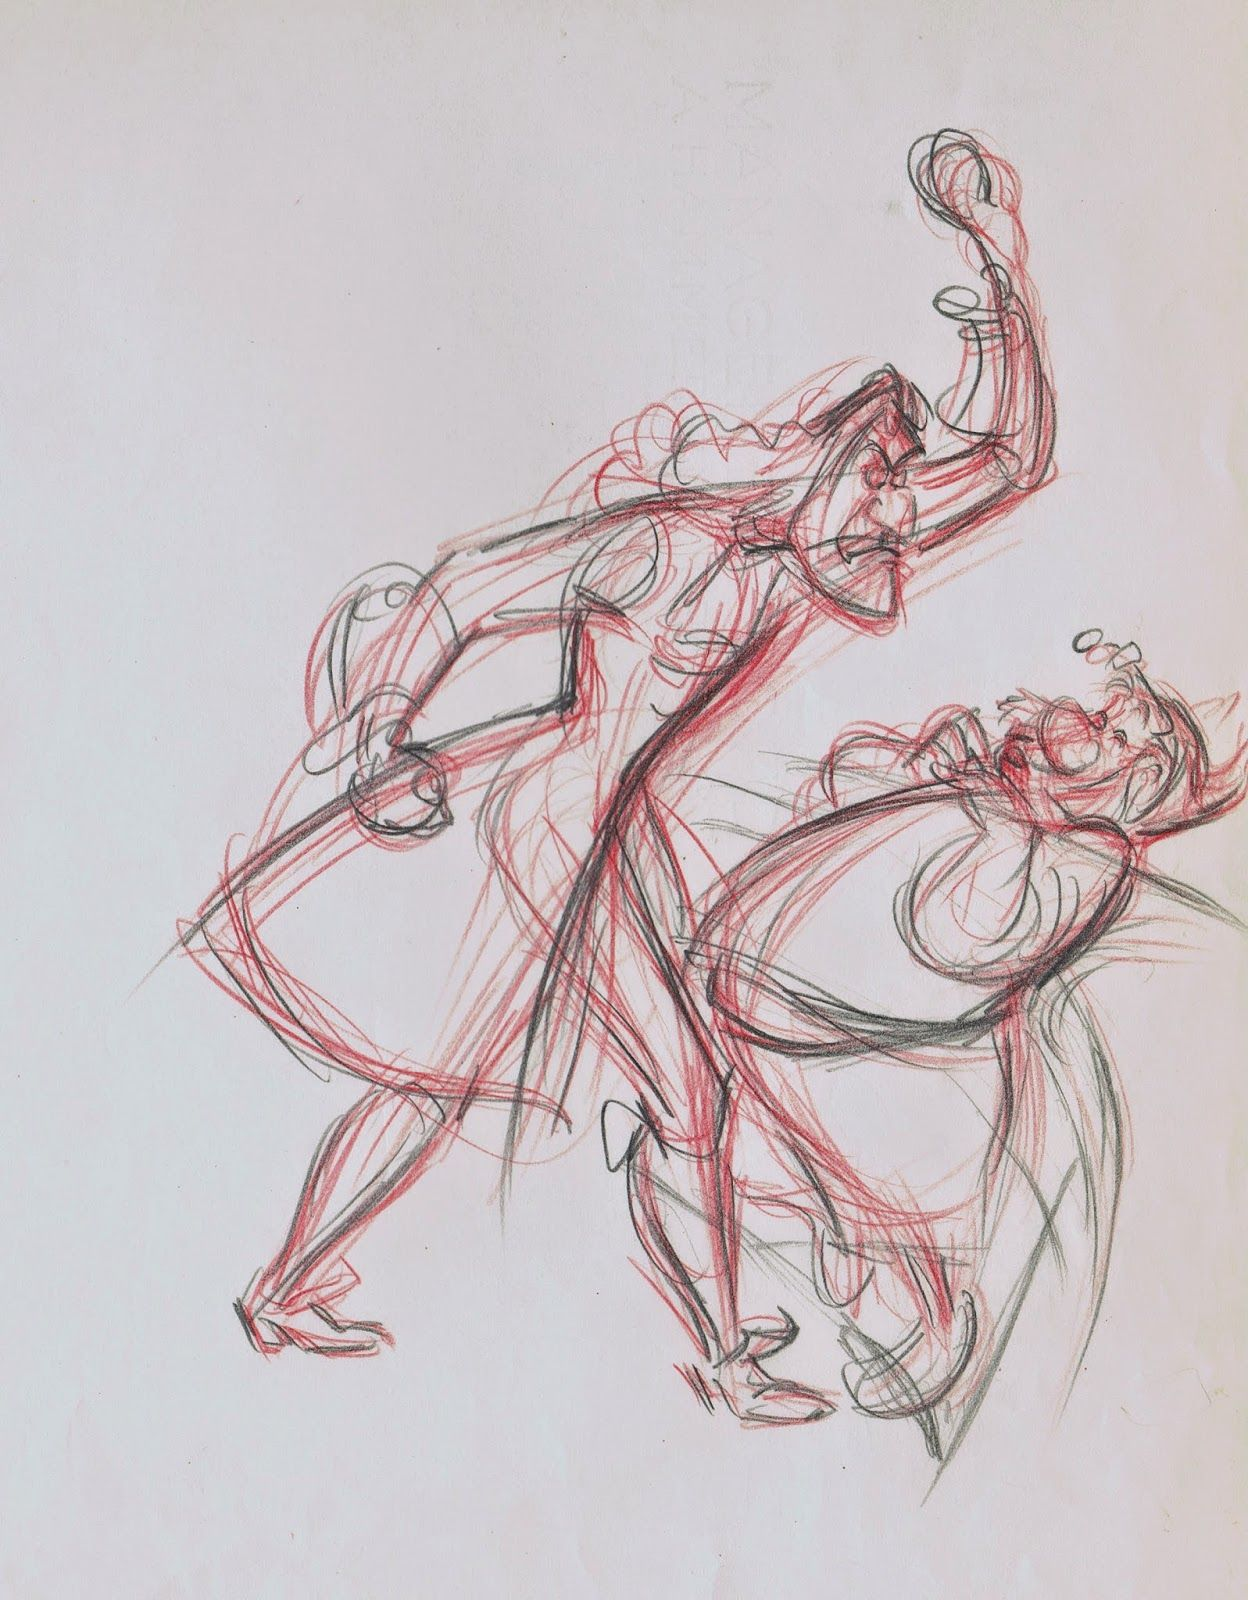 Captain Hook And Smee From Disneys Peter Pan By Frank Thomas